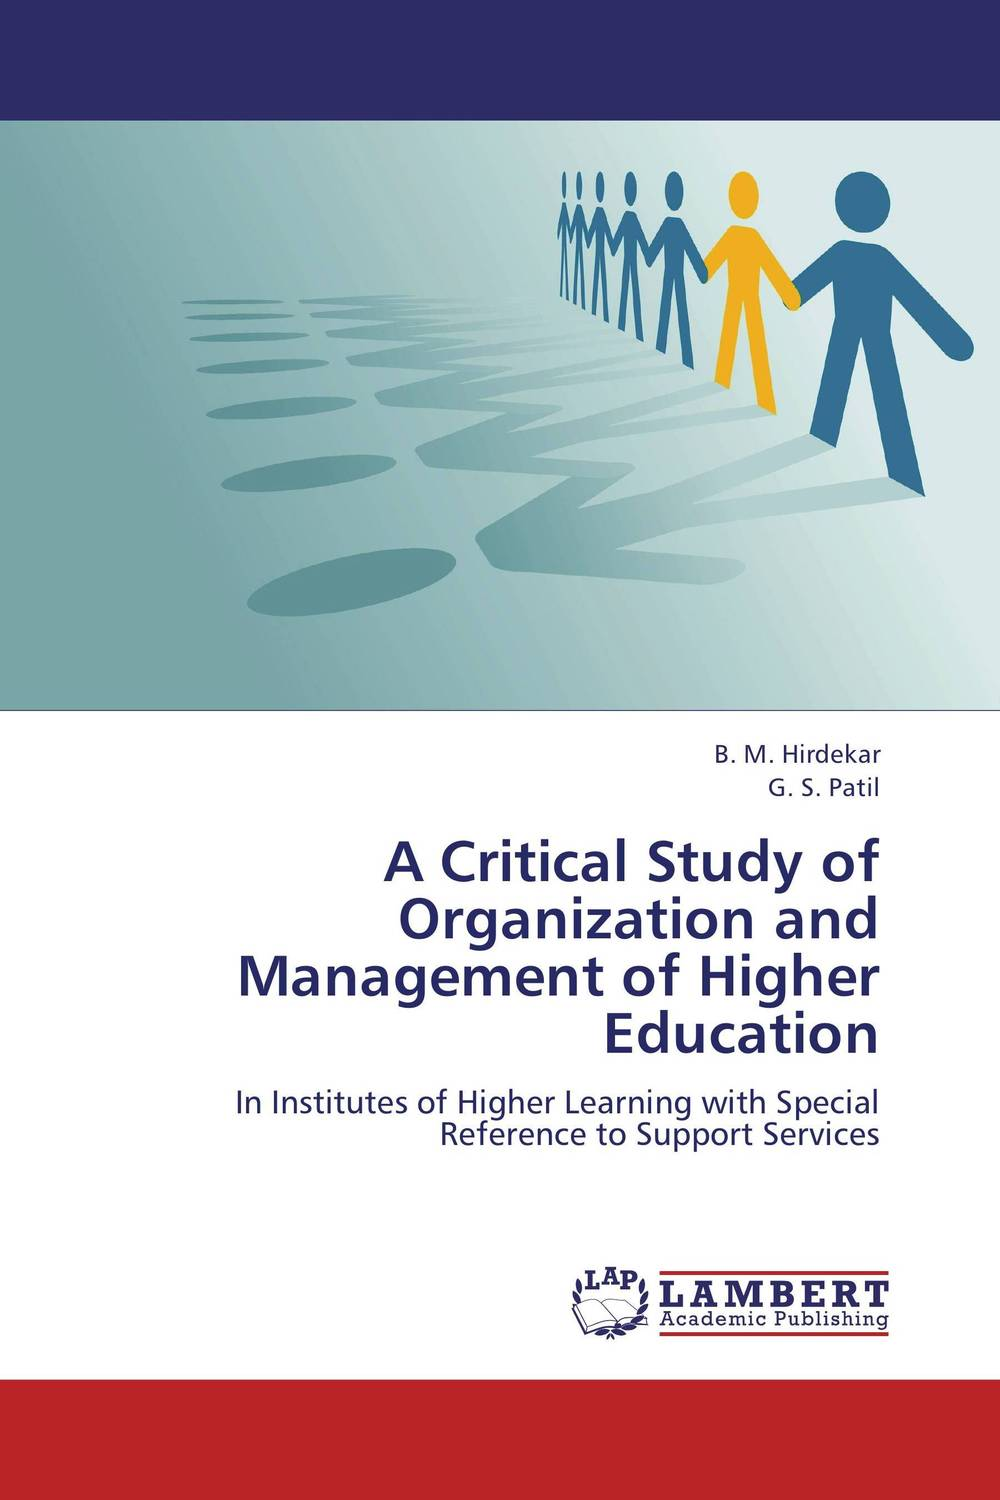 A Critical Study of Organization and Management of Higher Education david sibbet visual leaders new tools for visioning management and organization change